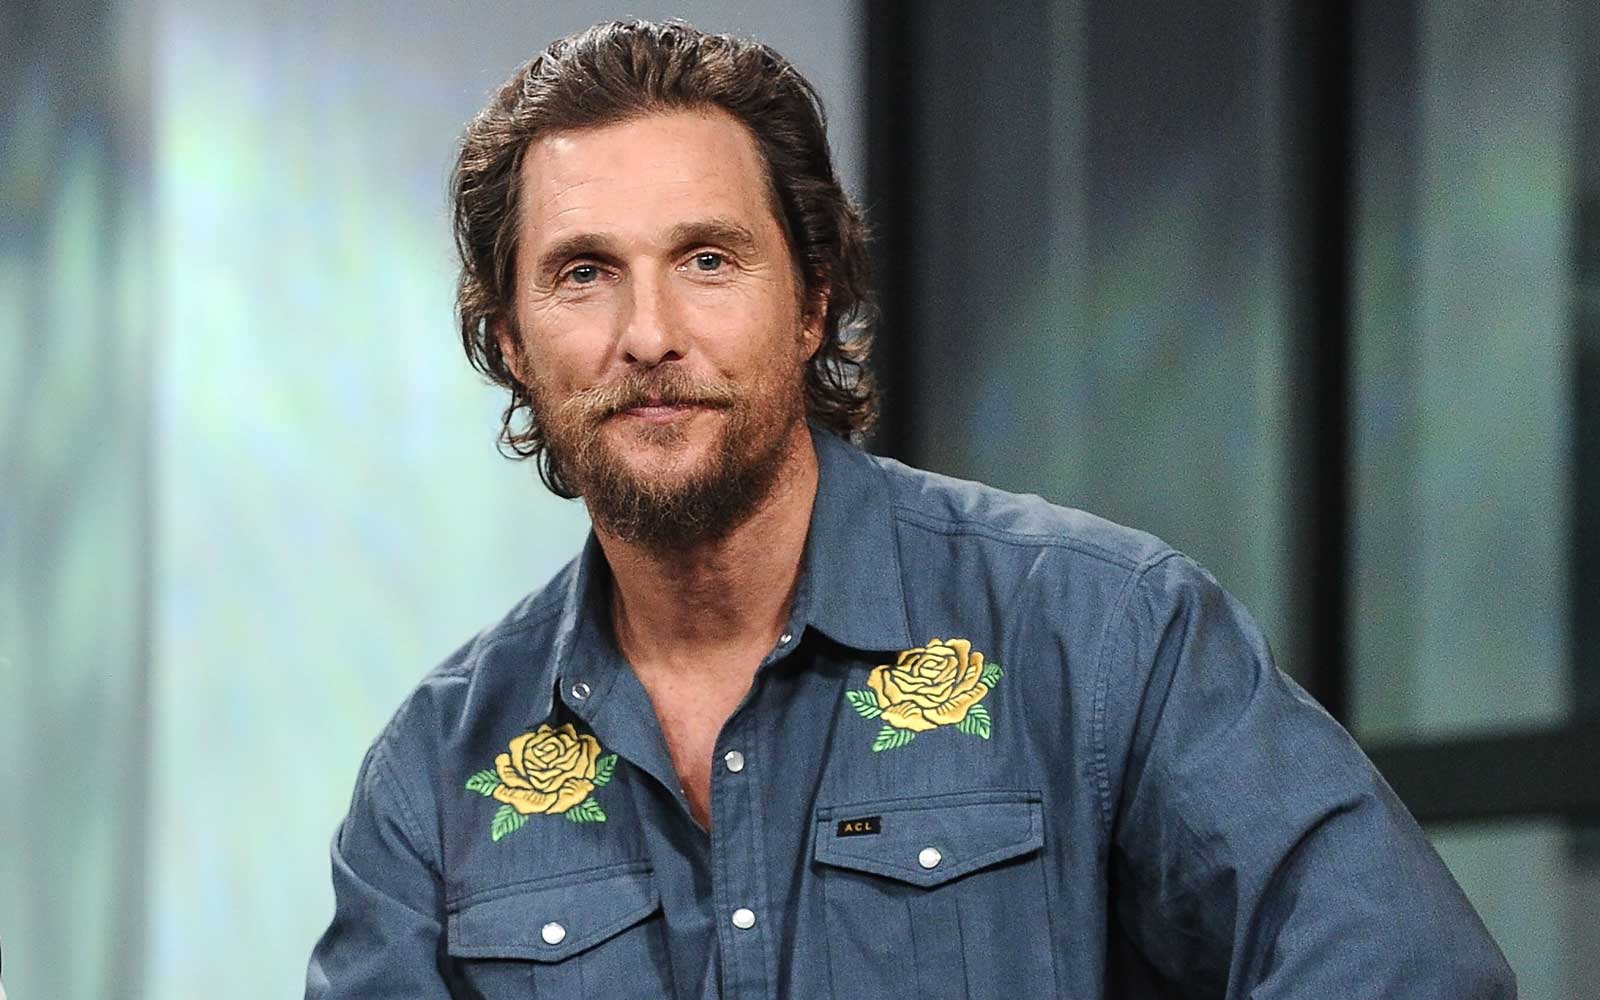 Matthew McConaughey Spent Two Weeks on This Greek Island and Loved It so Much He Decided to Stay One More